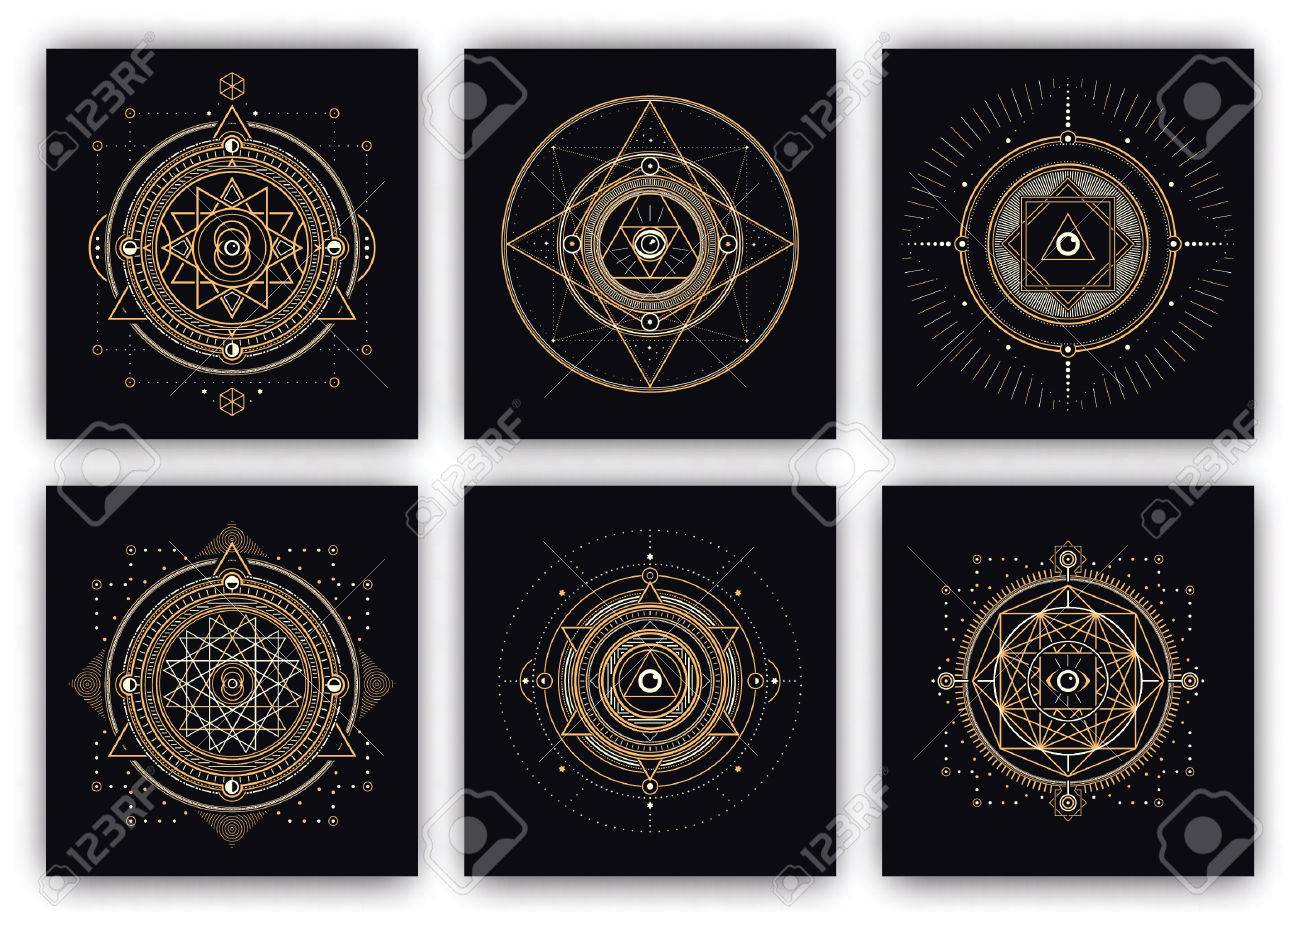 Sacred Symbols Design Set - Collection of Abstract Geometric Illustrations - Gold and White Elements on Dark Background - 61271497